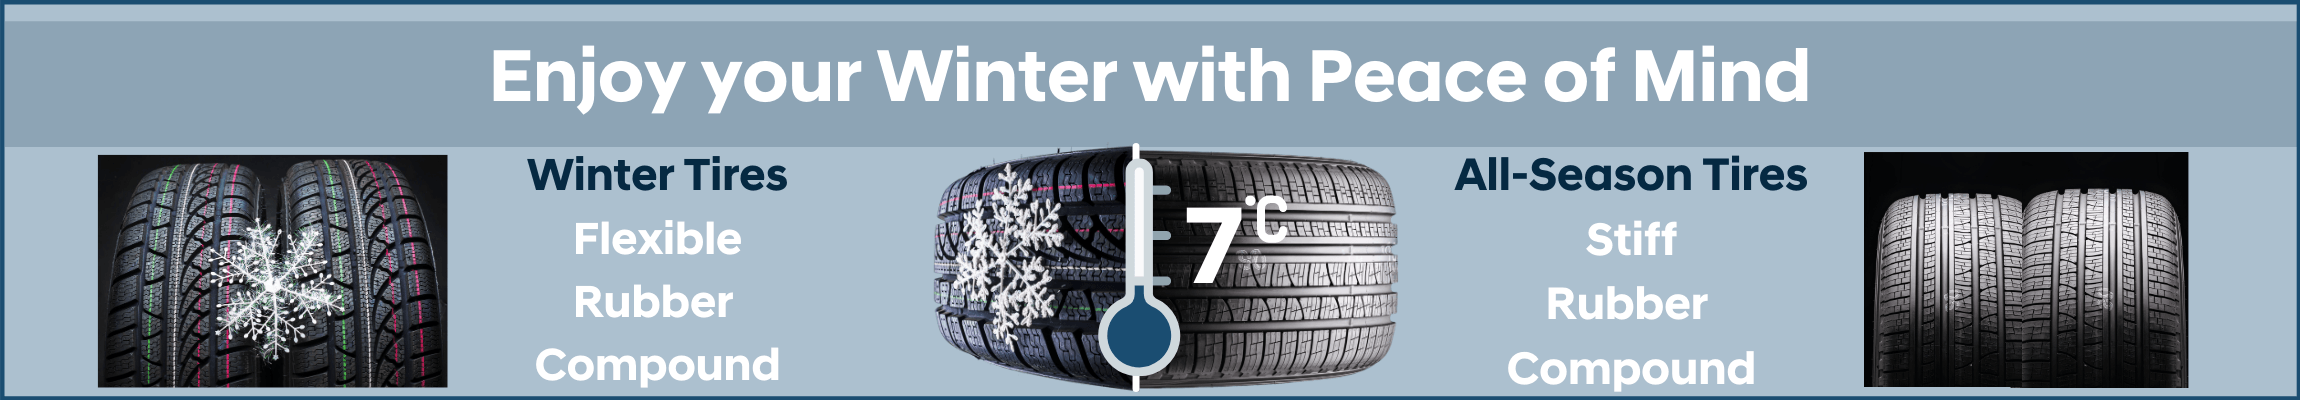 benefits of winter tires